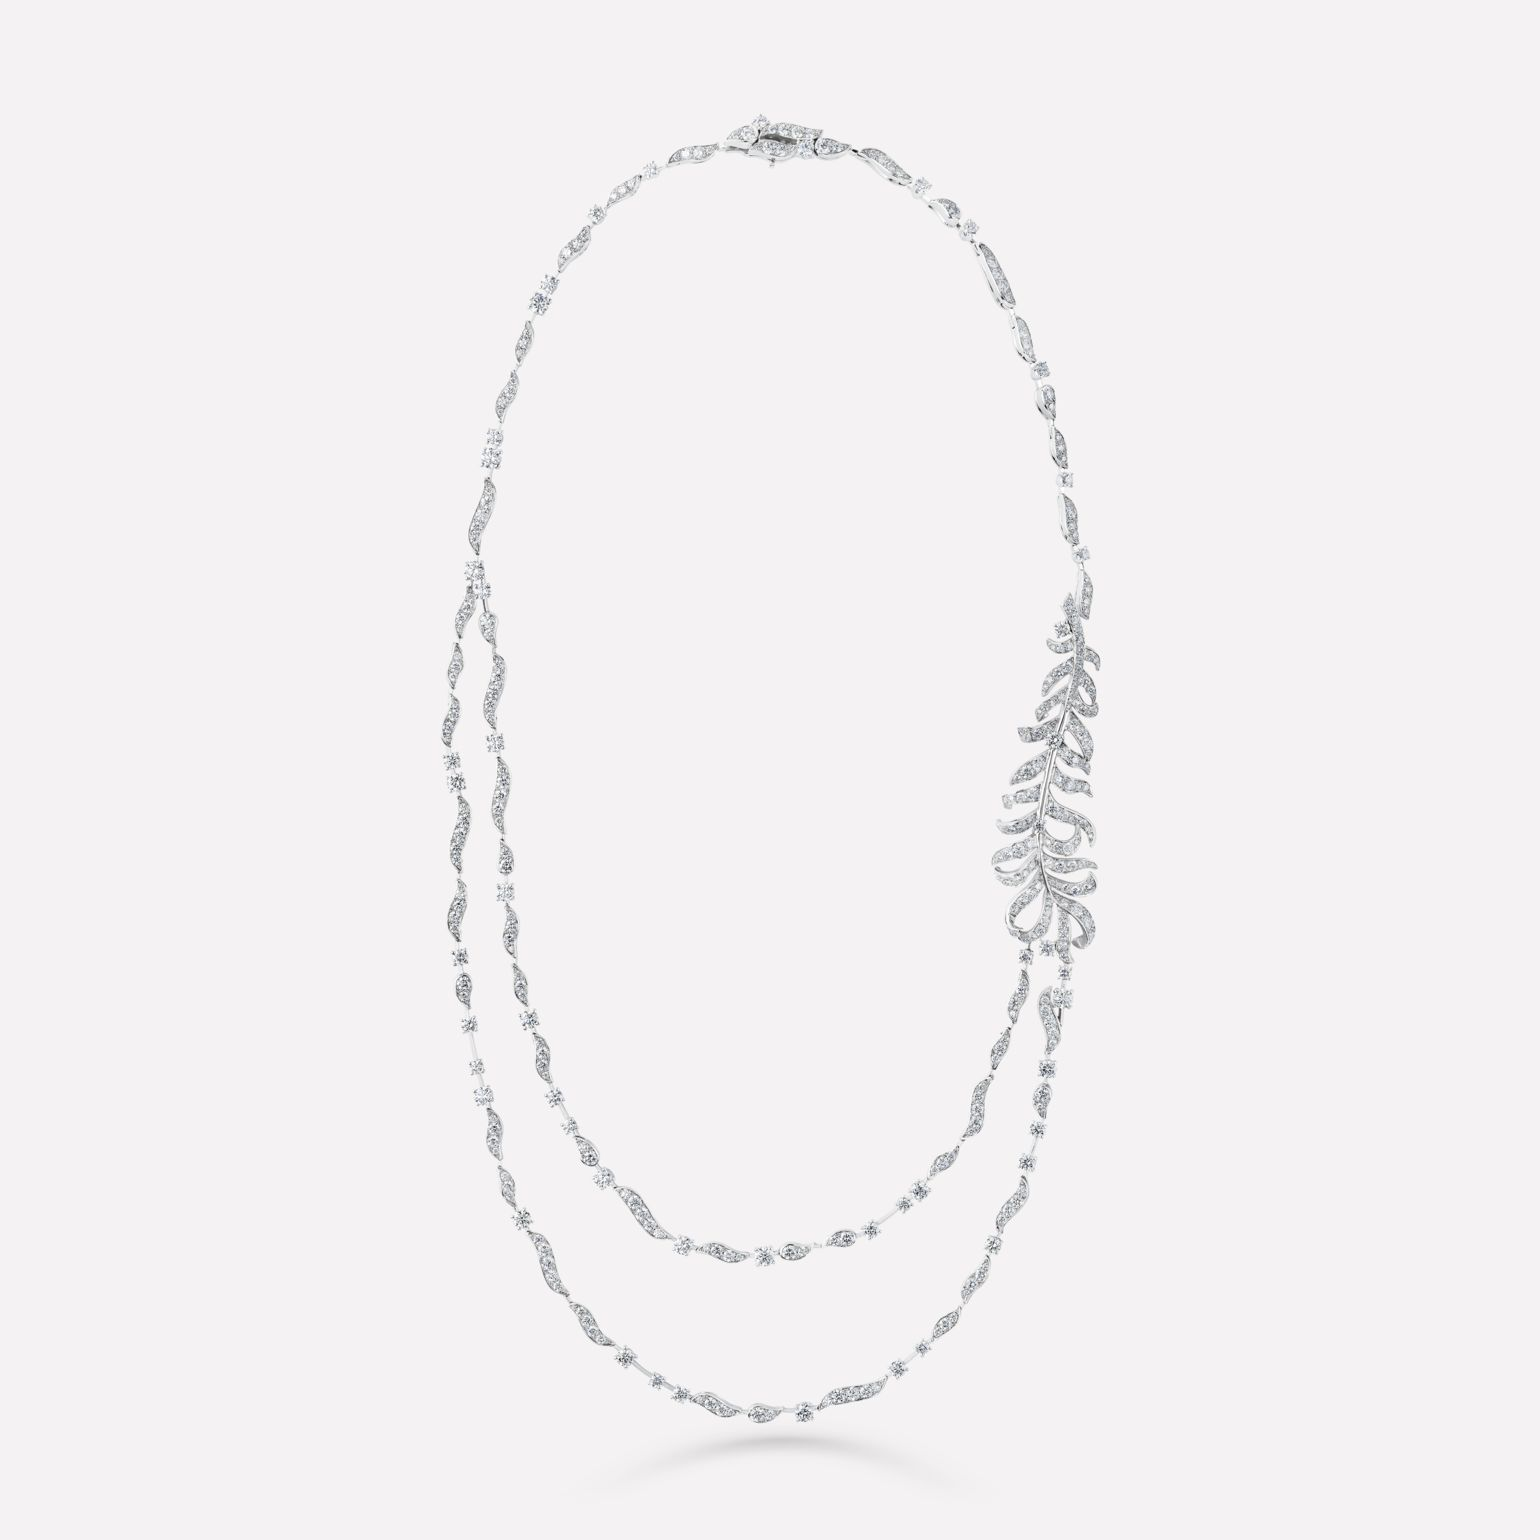 Plume de CHANEL Necklace Plume sautoir in 18K white gold and diamonds